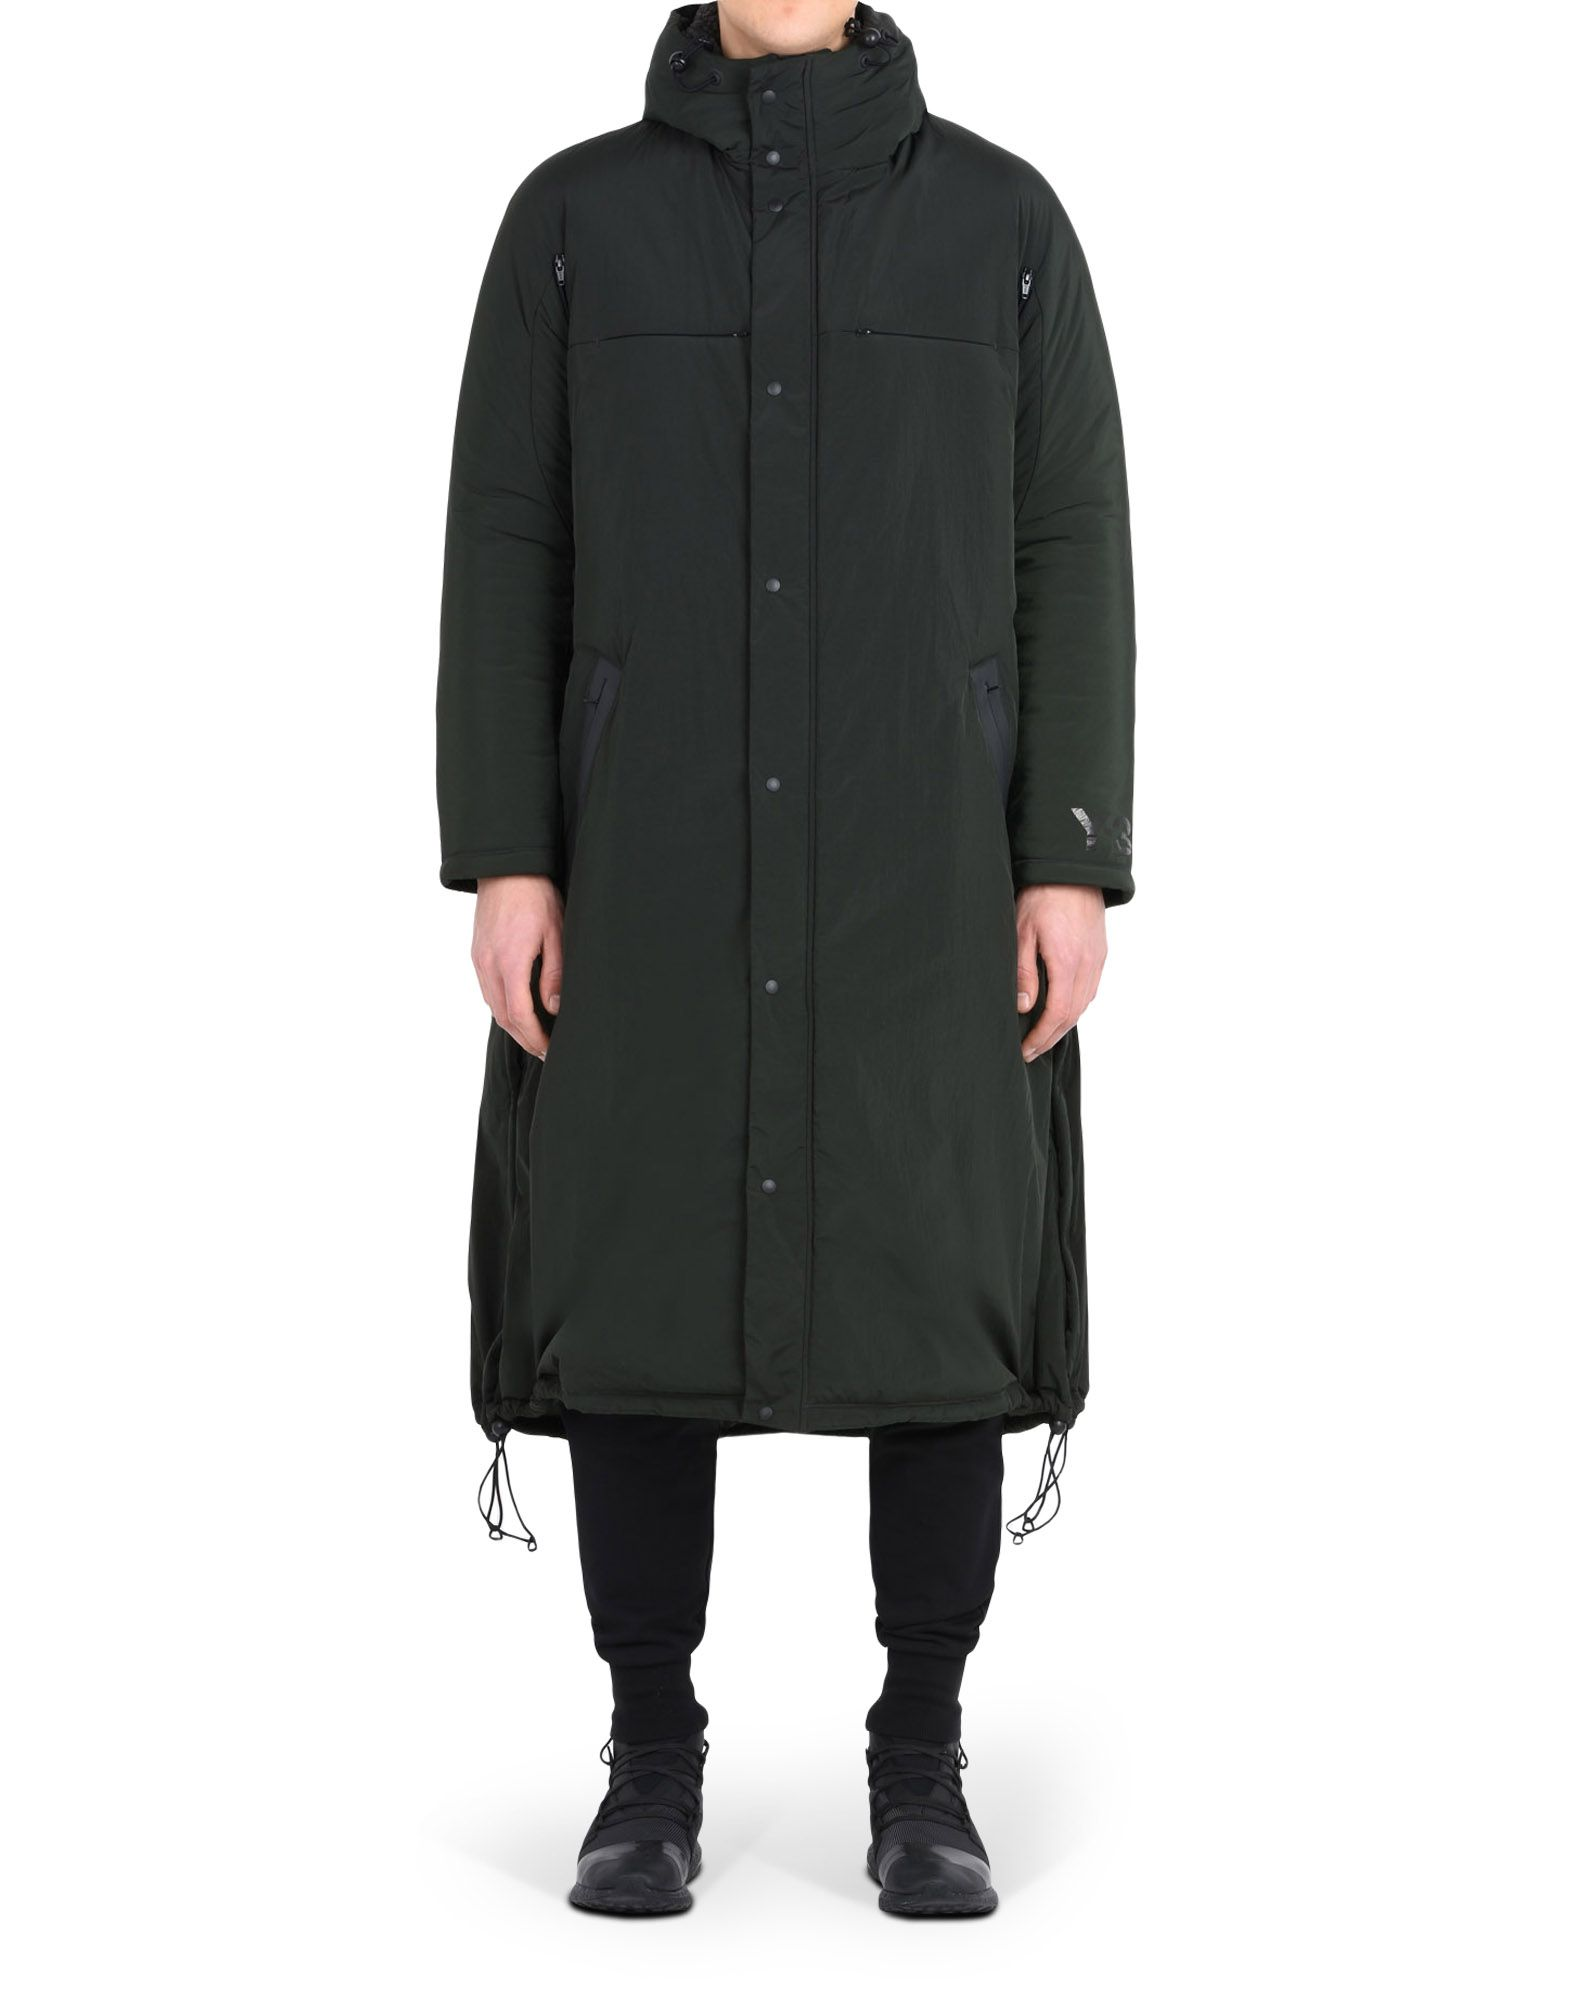 7e1afff77ba55 Y 3 PADDED COAT Coats | Adidas Y-3 Official Site